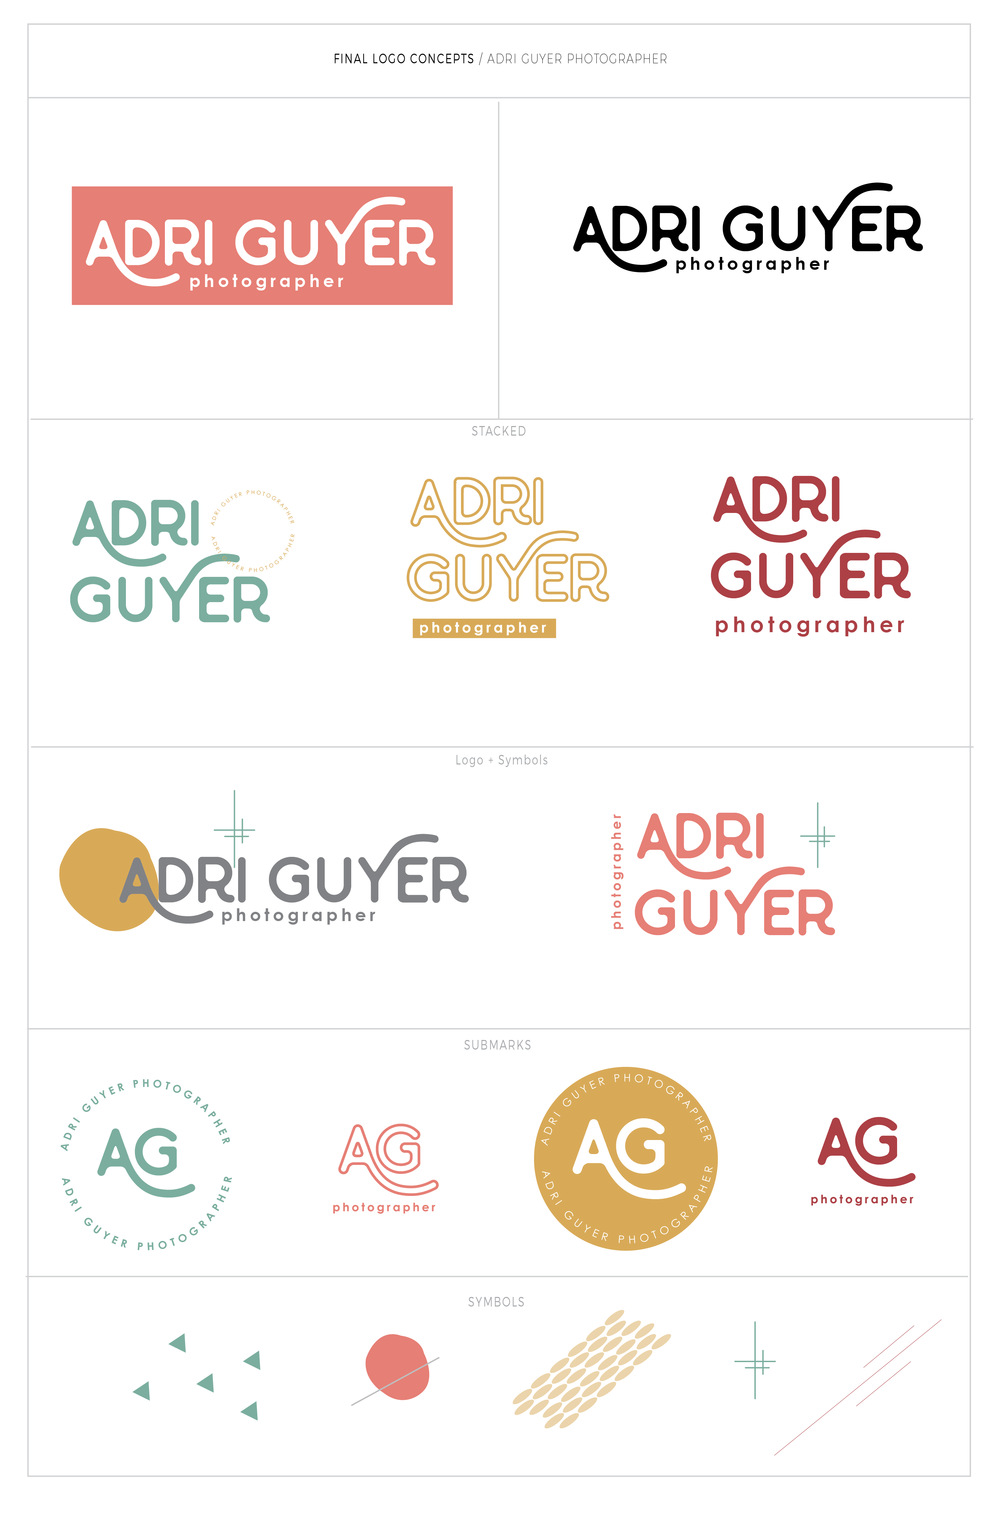 AdriGuyer_PhotographerFinal-01.png